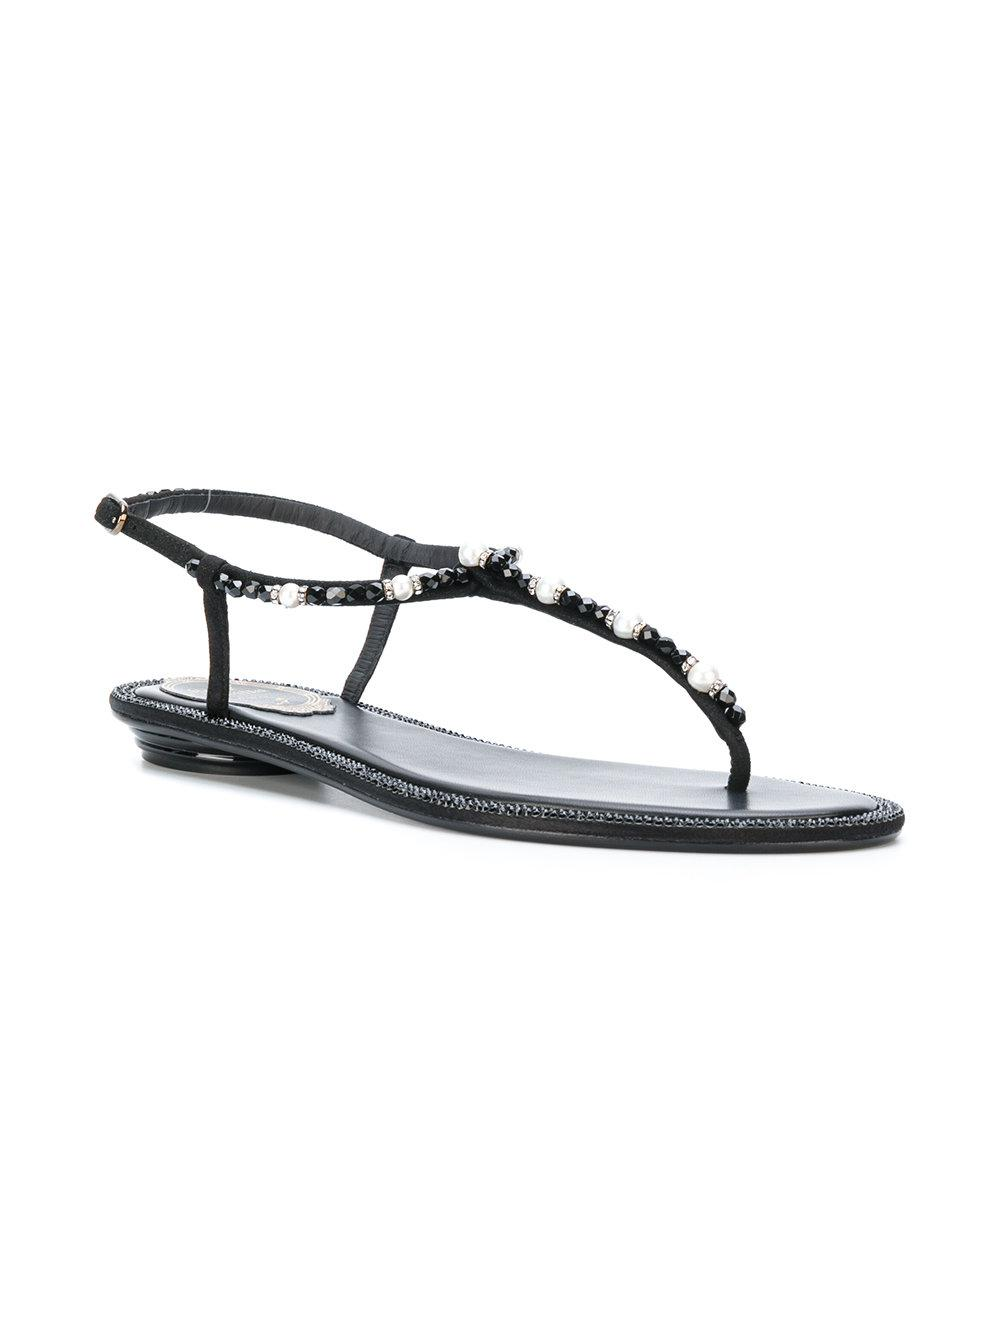 63a372c1edb Lyst - Rene Caovilla Beaded T-strap Flat Sandals in Black